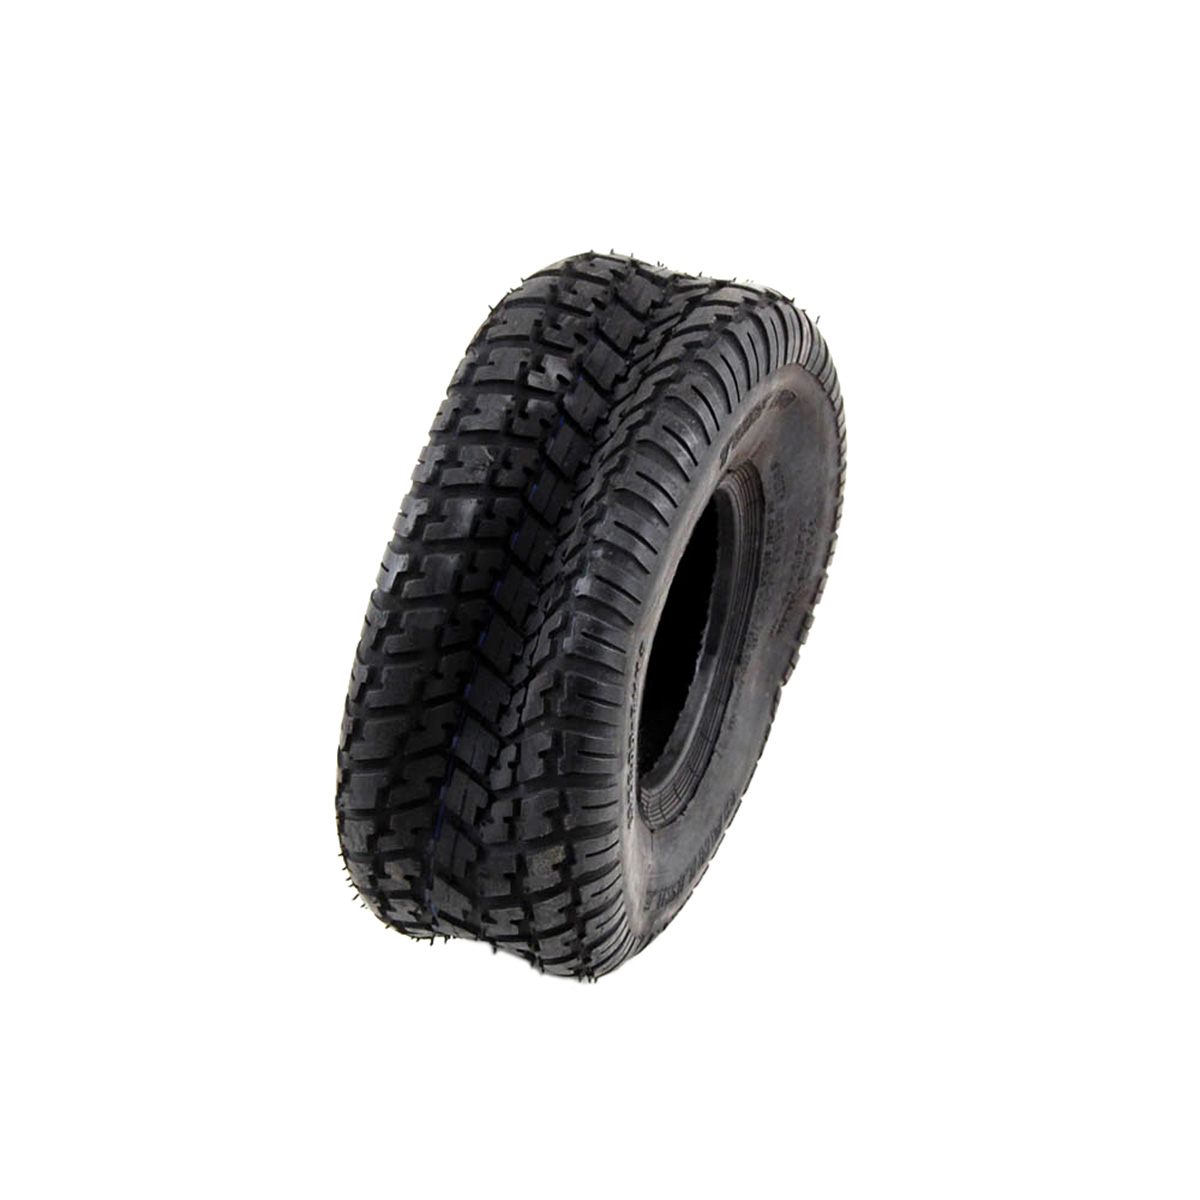 Tire-TURF 734-3186A